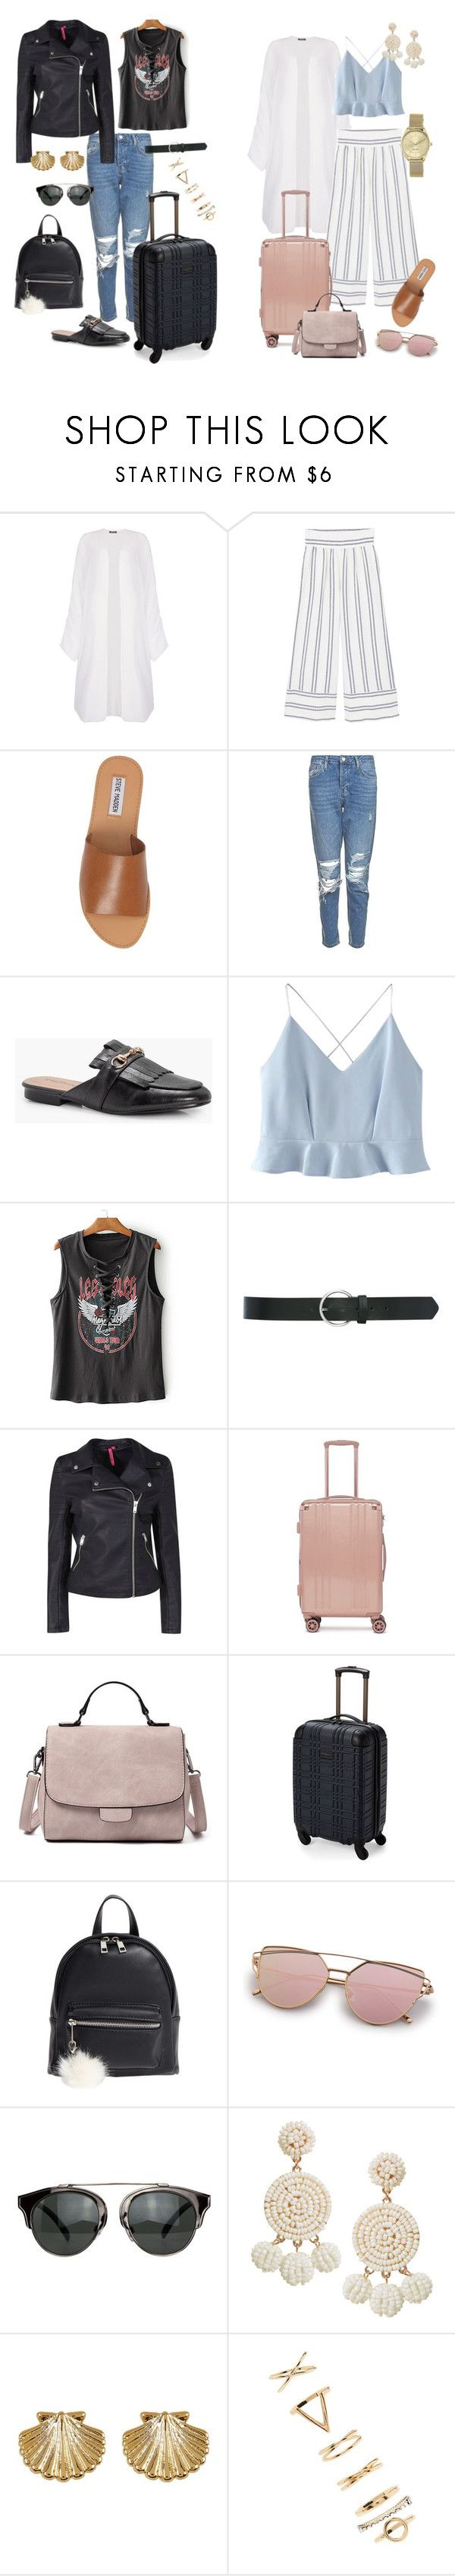 """Airport Fashion"" by edcs on Polyvore featuring Boohoo, MANGO, Steve Madden, Topshop, WithChic, M&Co, CalPak, Ben Sherman, BP. and Humble Chic"